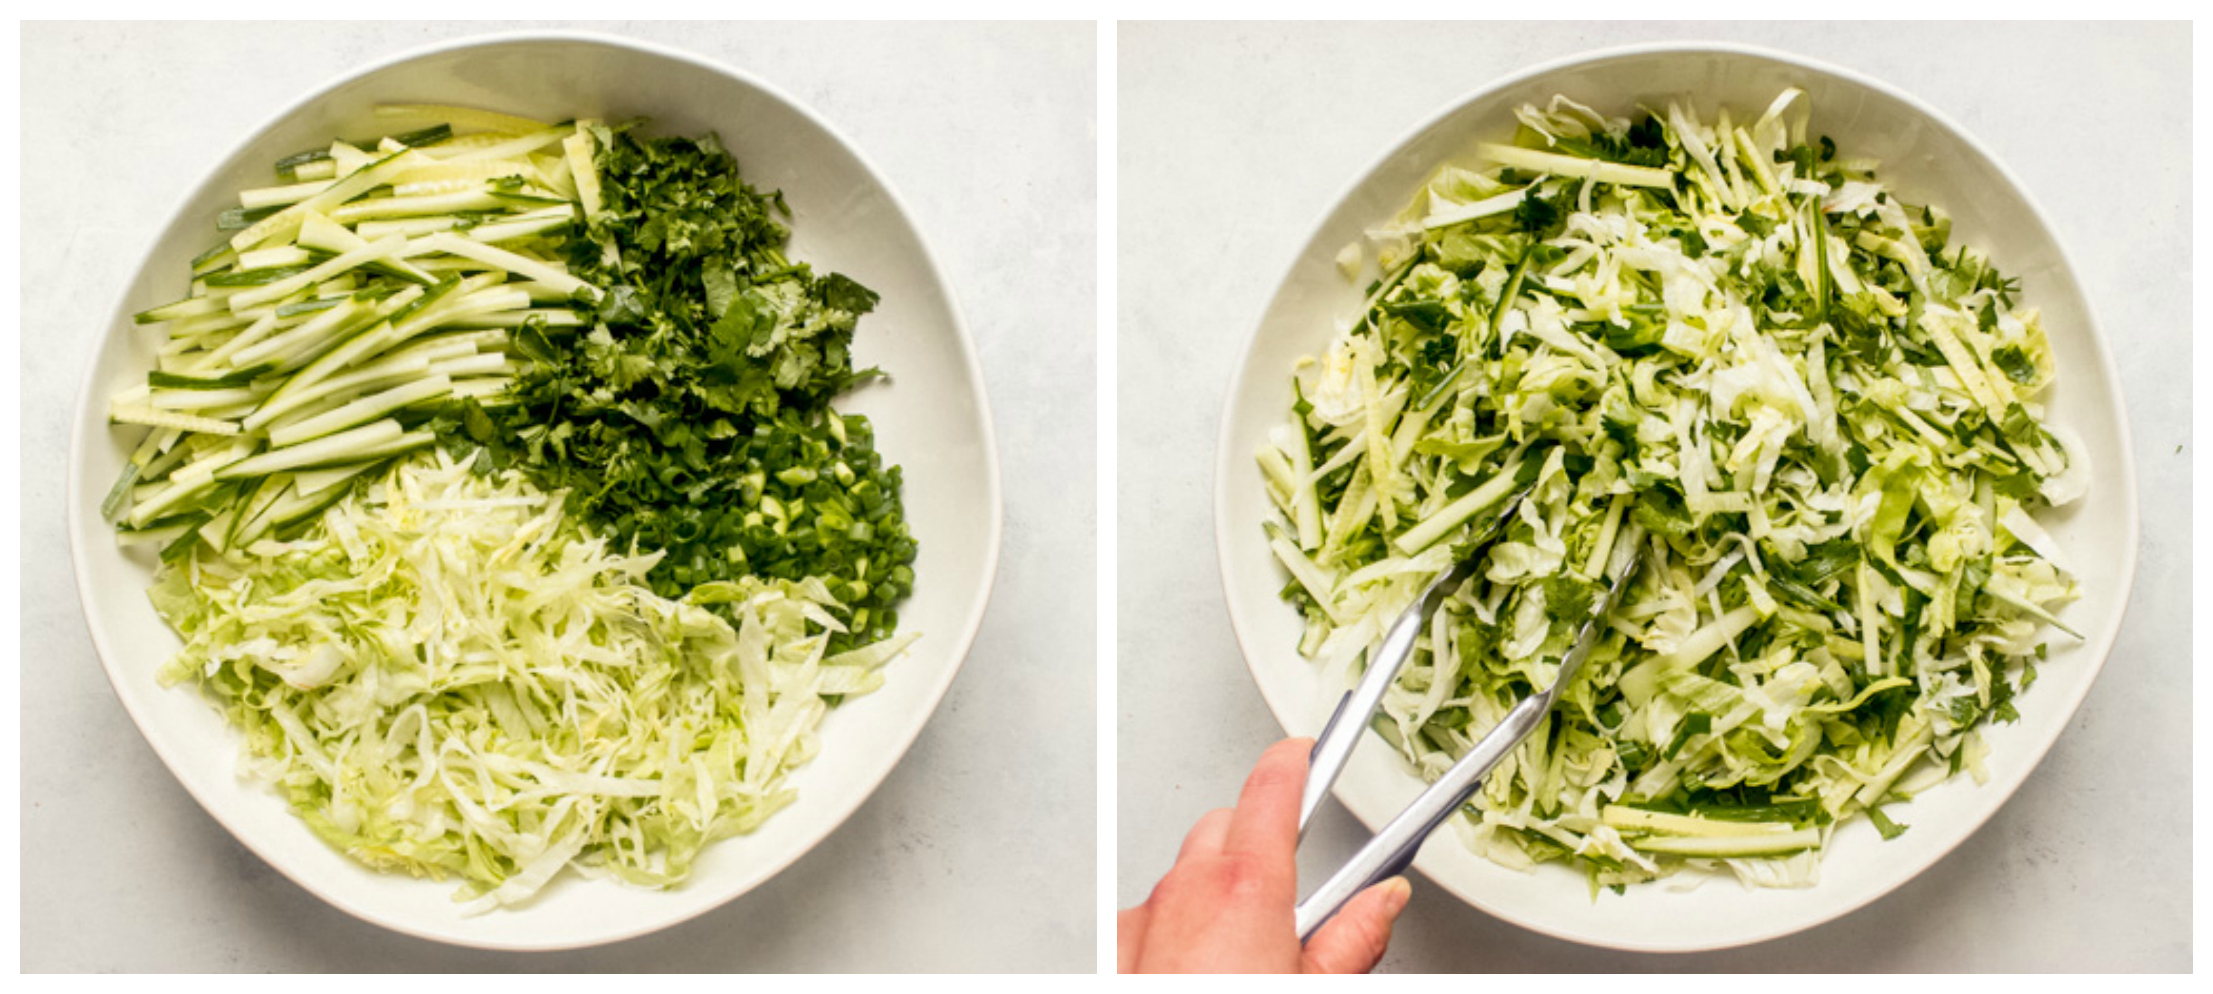 chopped iceberg lettuce in a bowl